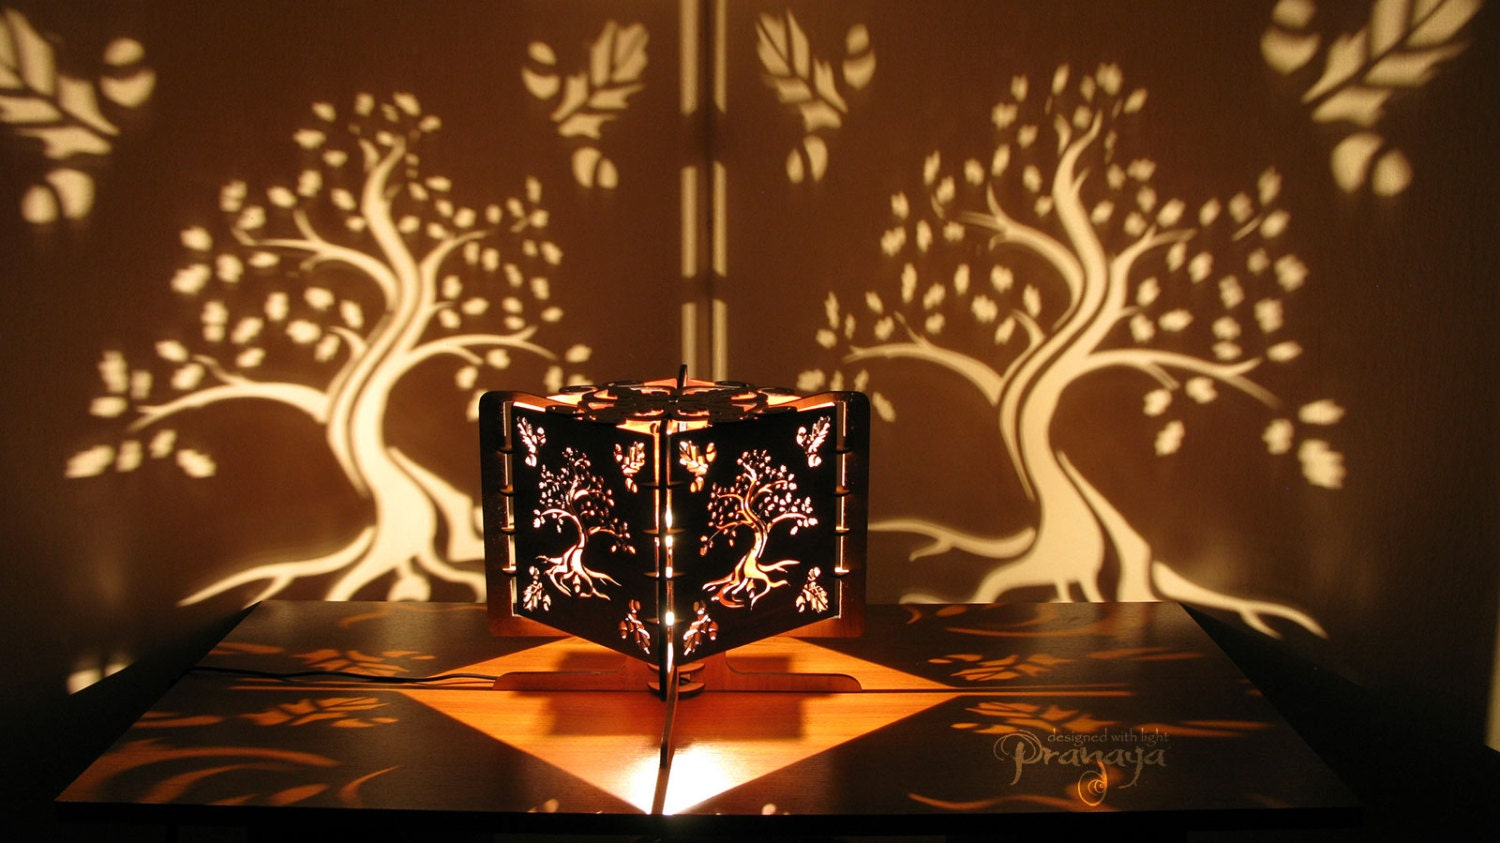 Decorative Wood Lasercut Oak Tree Shadow Lamp Chill